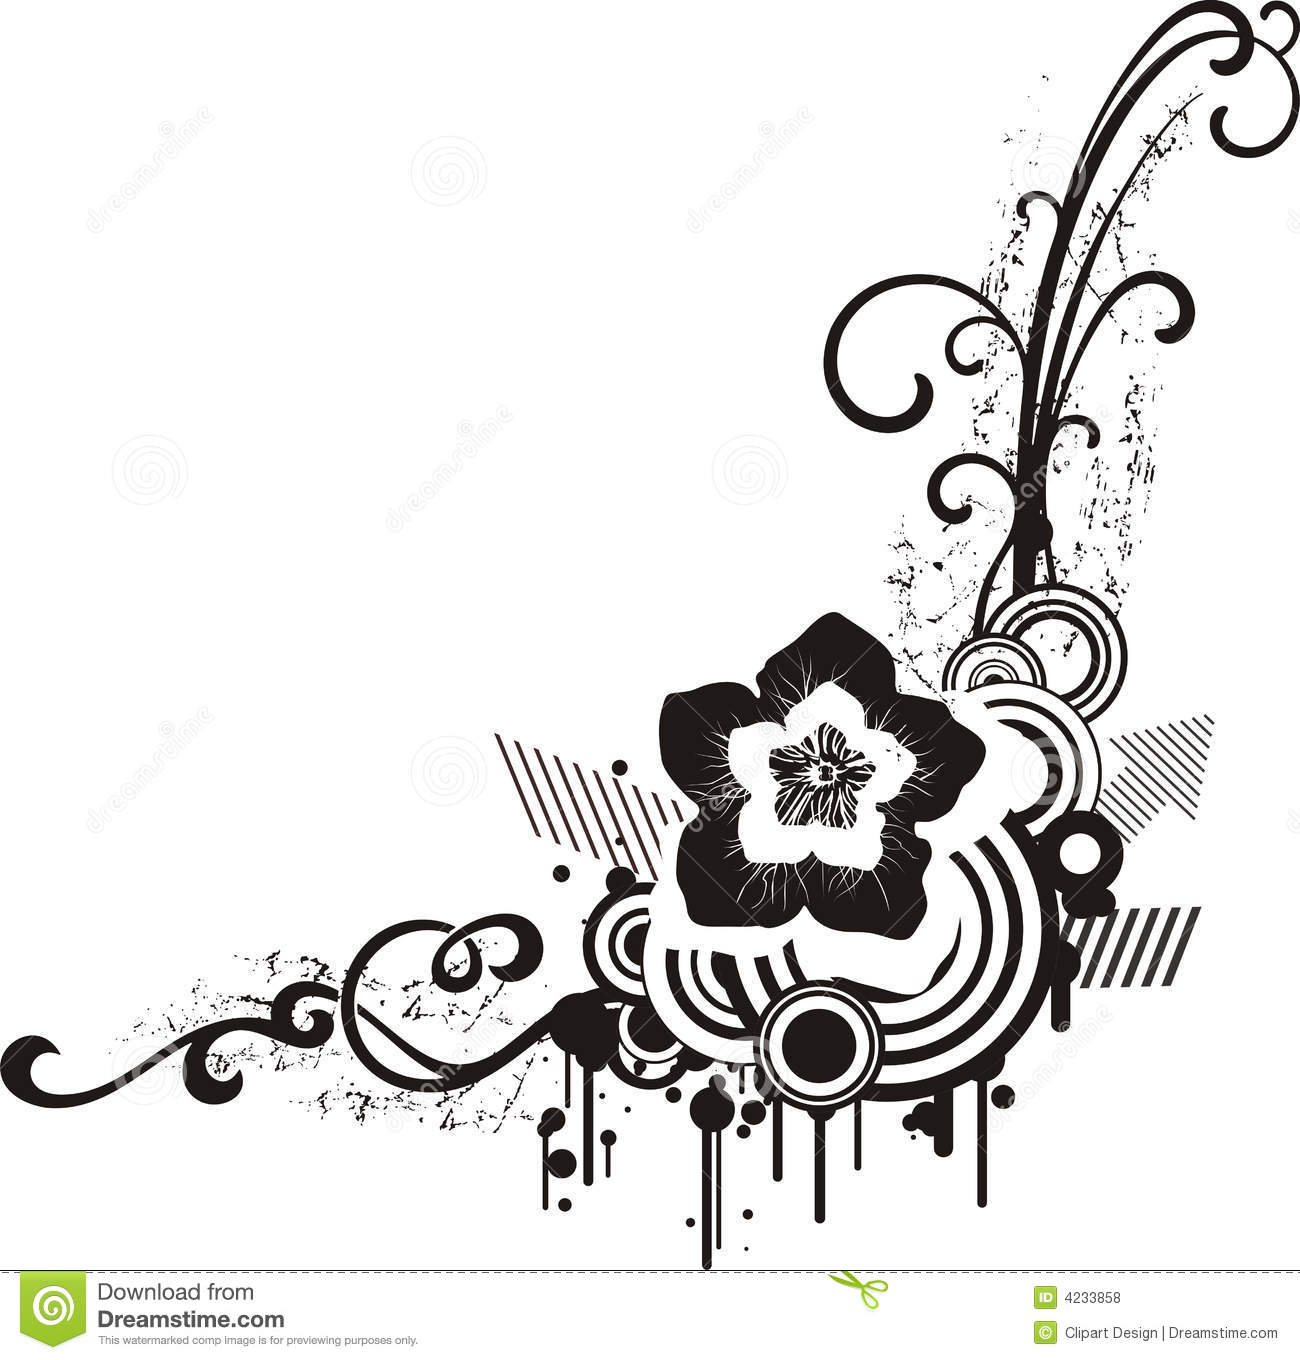 Black U0026 White Floral Designs. Decorative, Ornate.